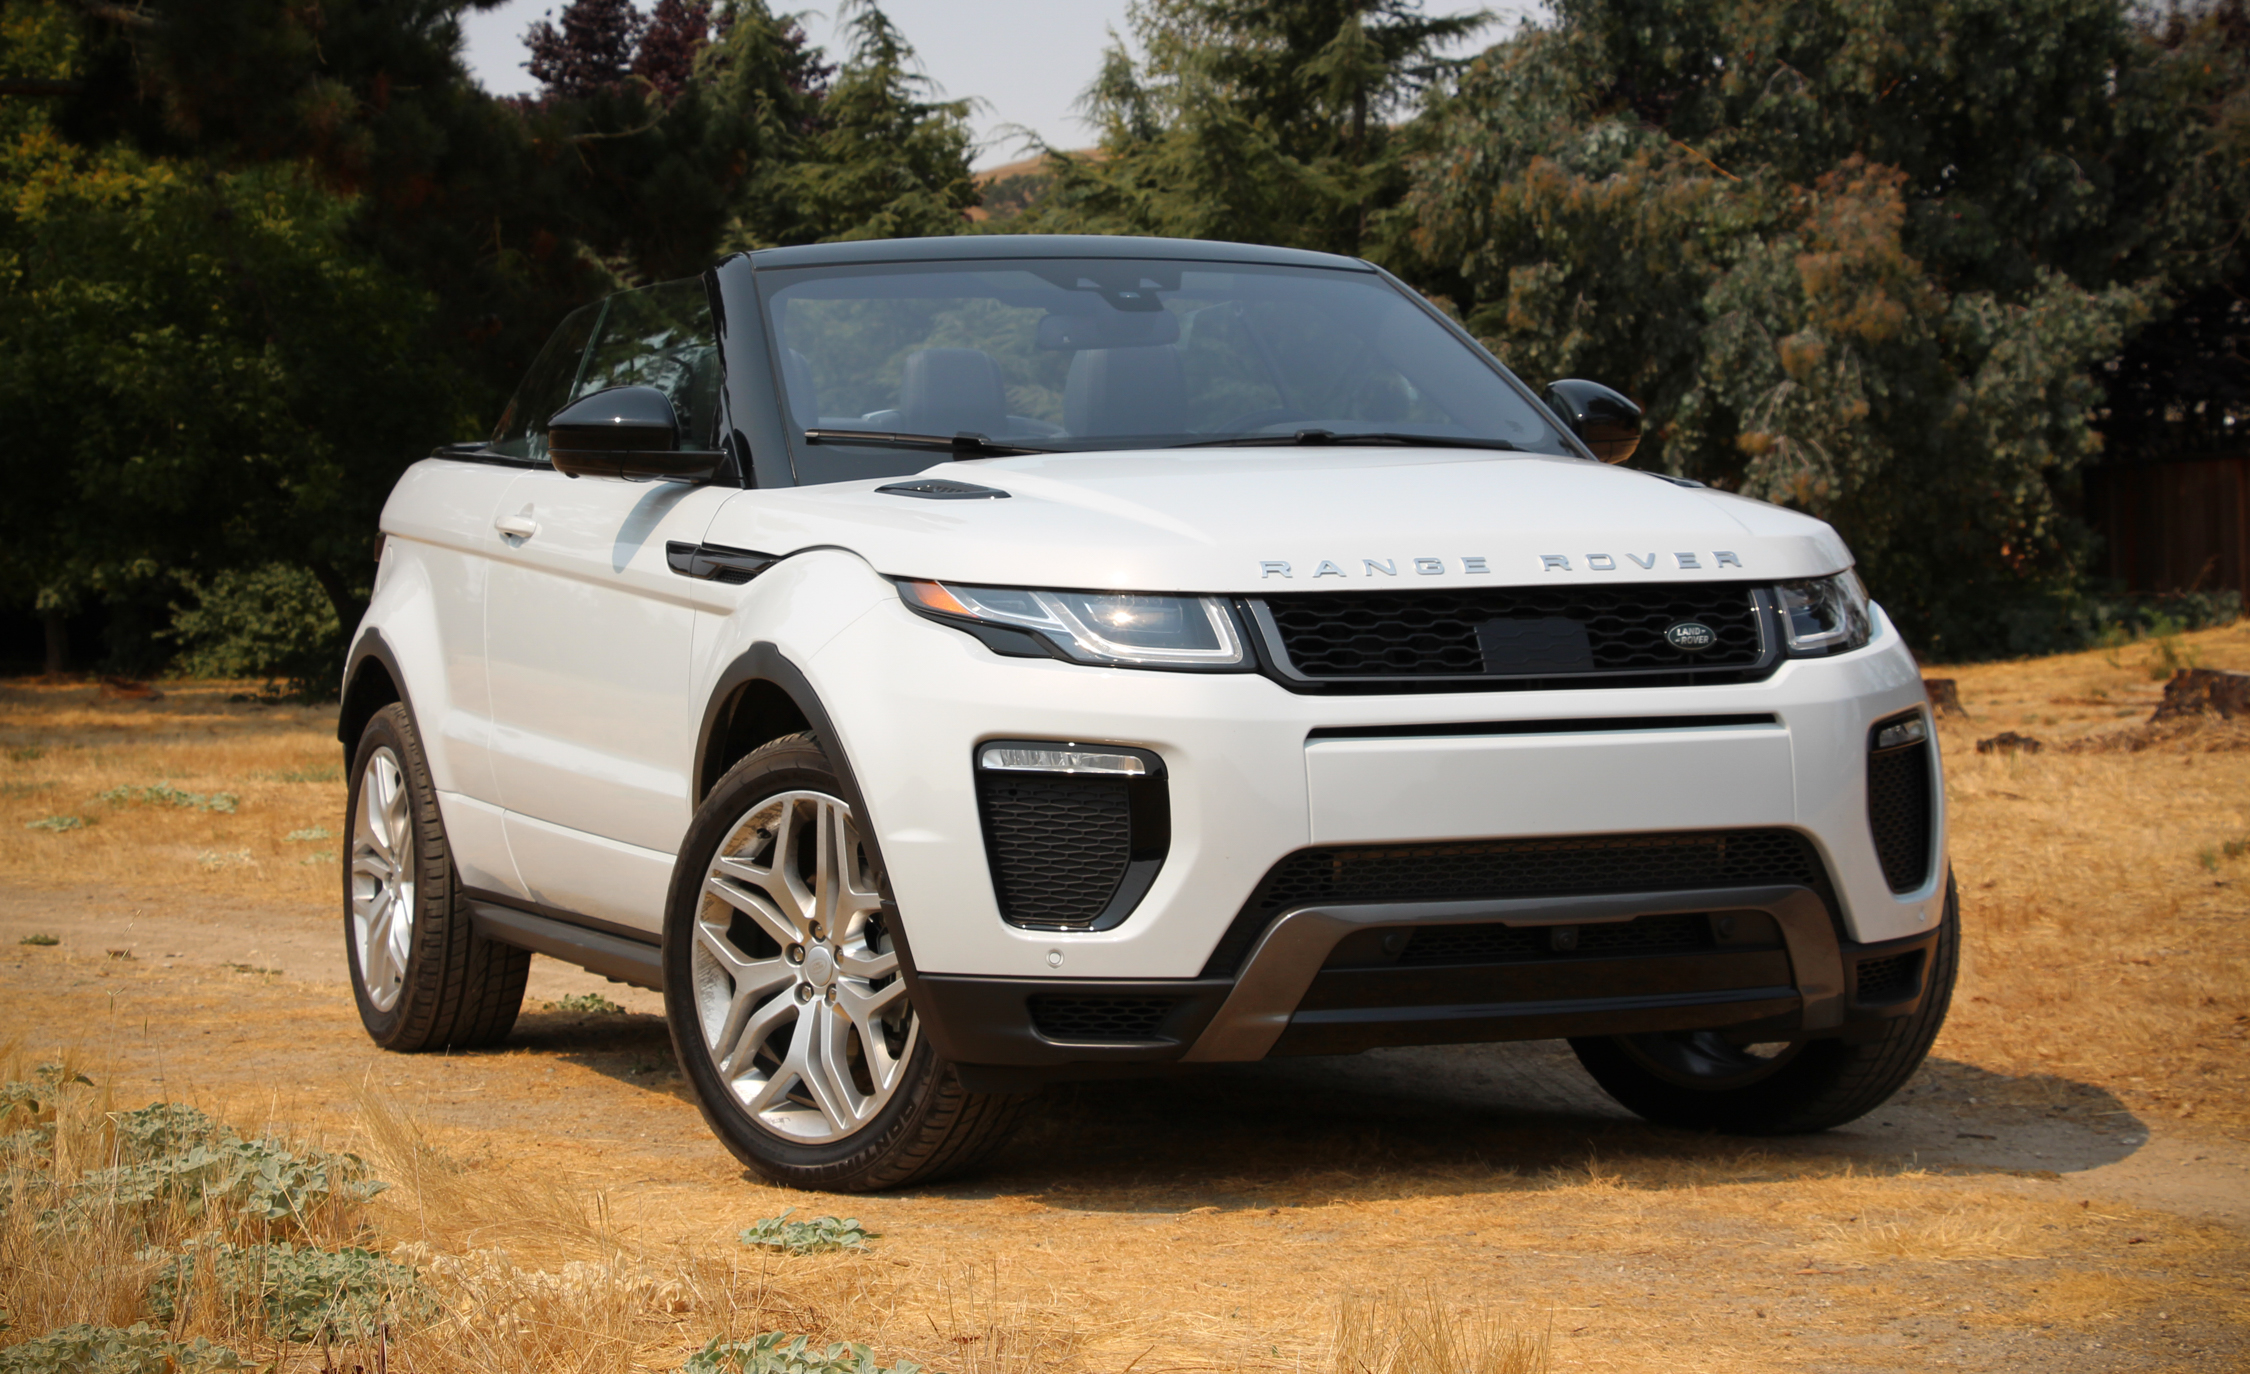 2017 Land Rover Range Rover Evoque Convertible (Photo 1 of 14)